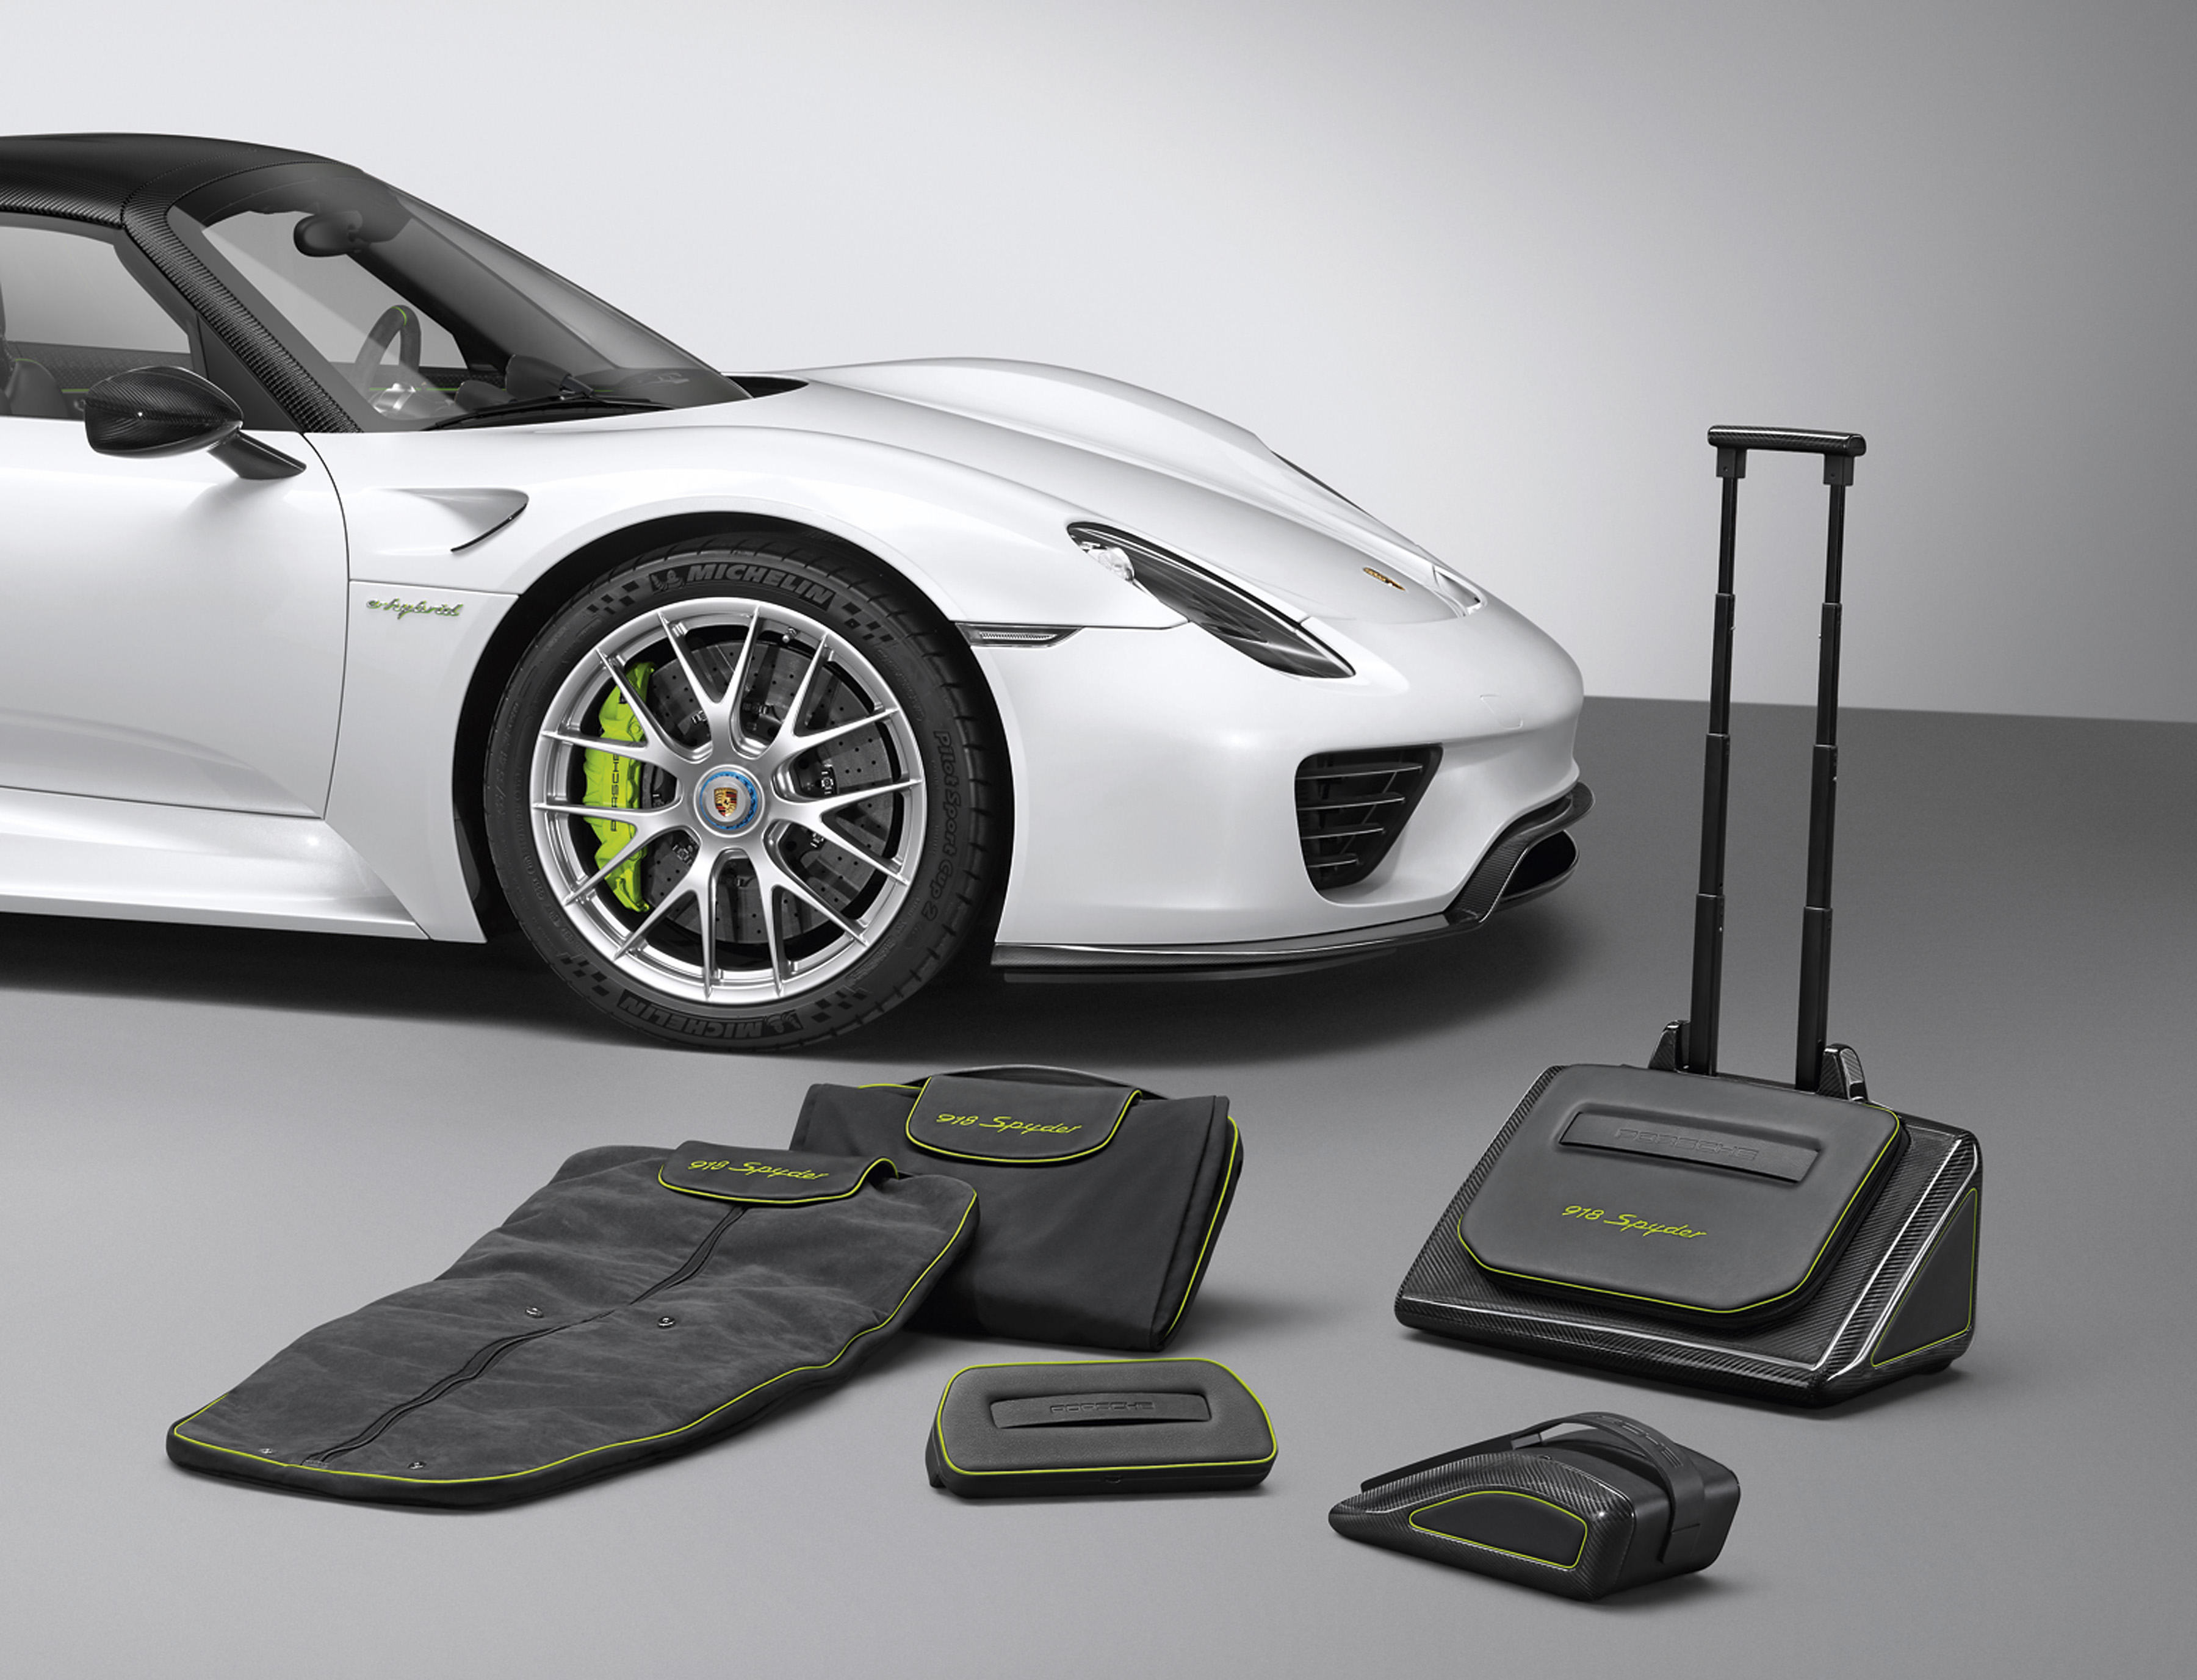 porsche 918 luggage porsche everyday dedeporsches blog